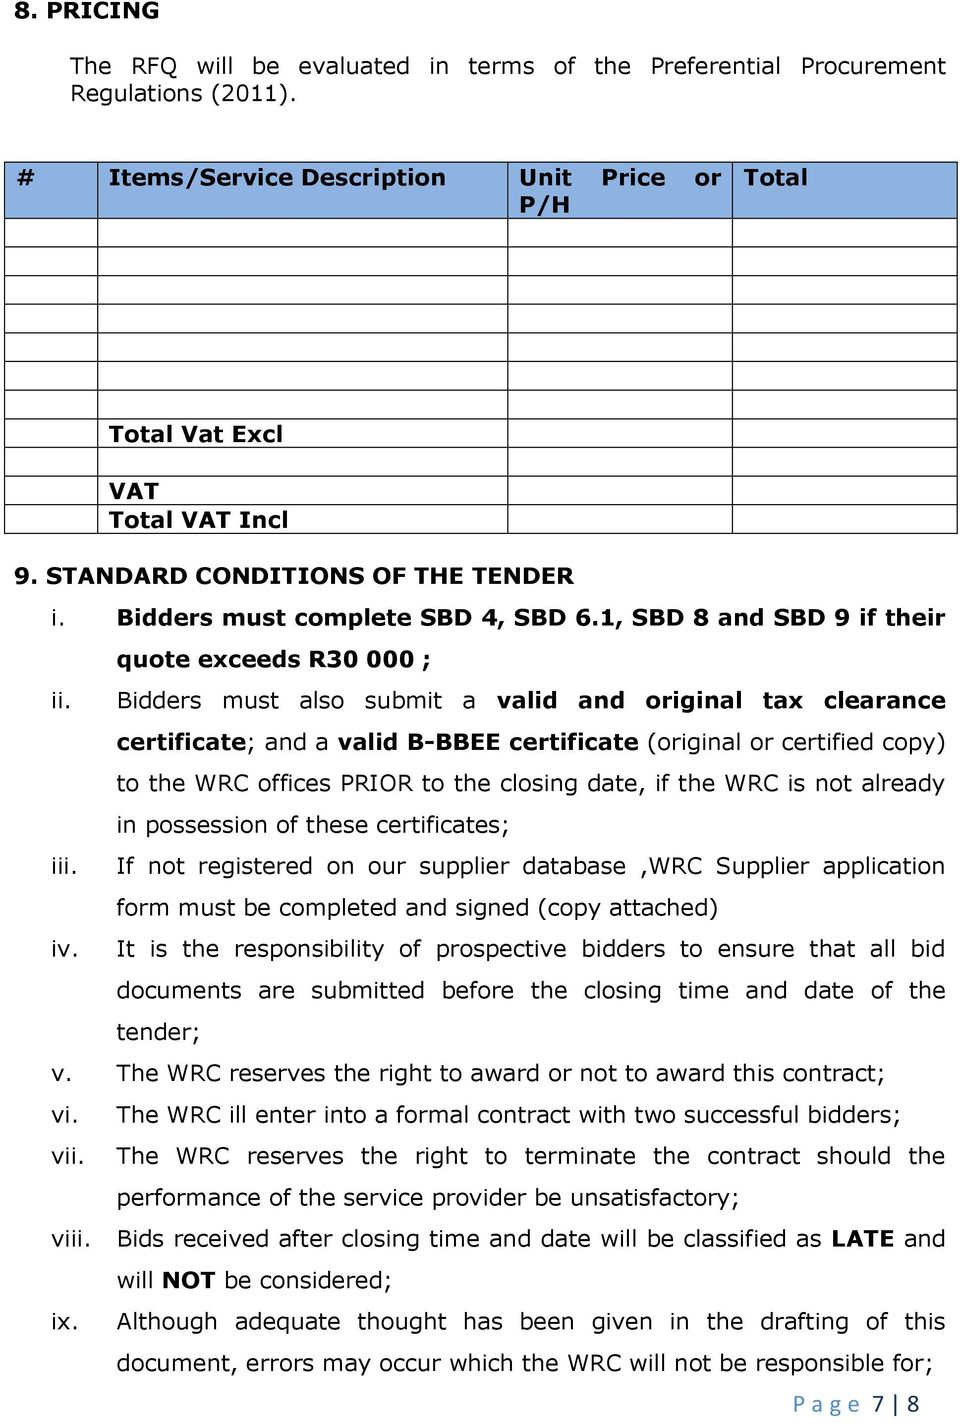 quote exceeds R30 000 ; Bidders must also submit a valid and original tax clearance certificate; and a valid B-BBEE certificate (original or certified copy) to the WRC offices PRIOR to the closing